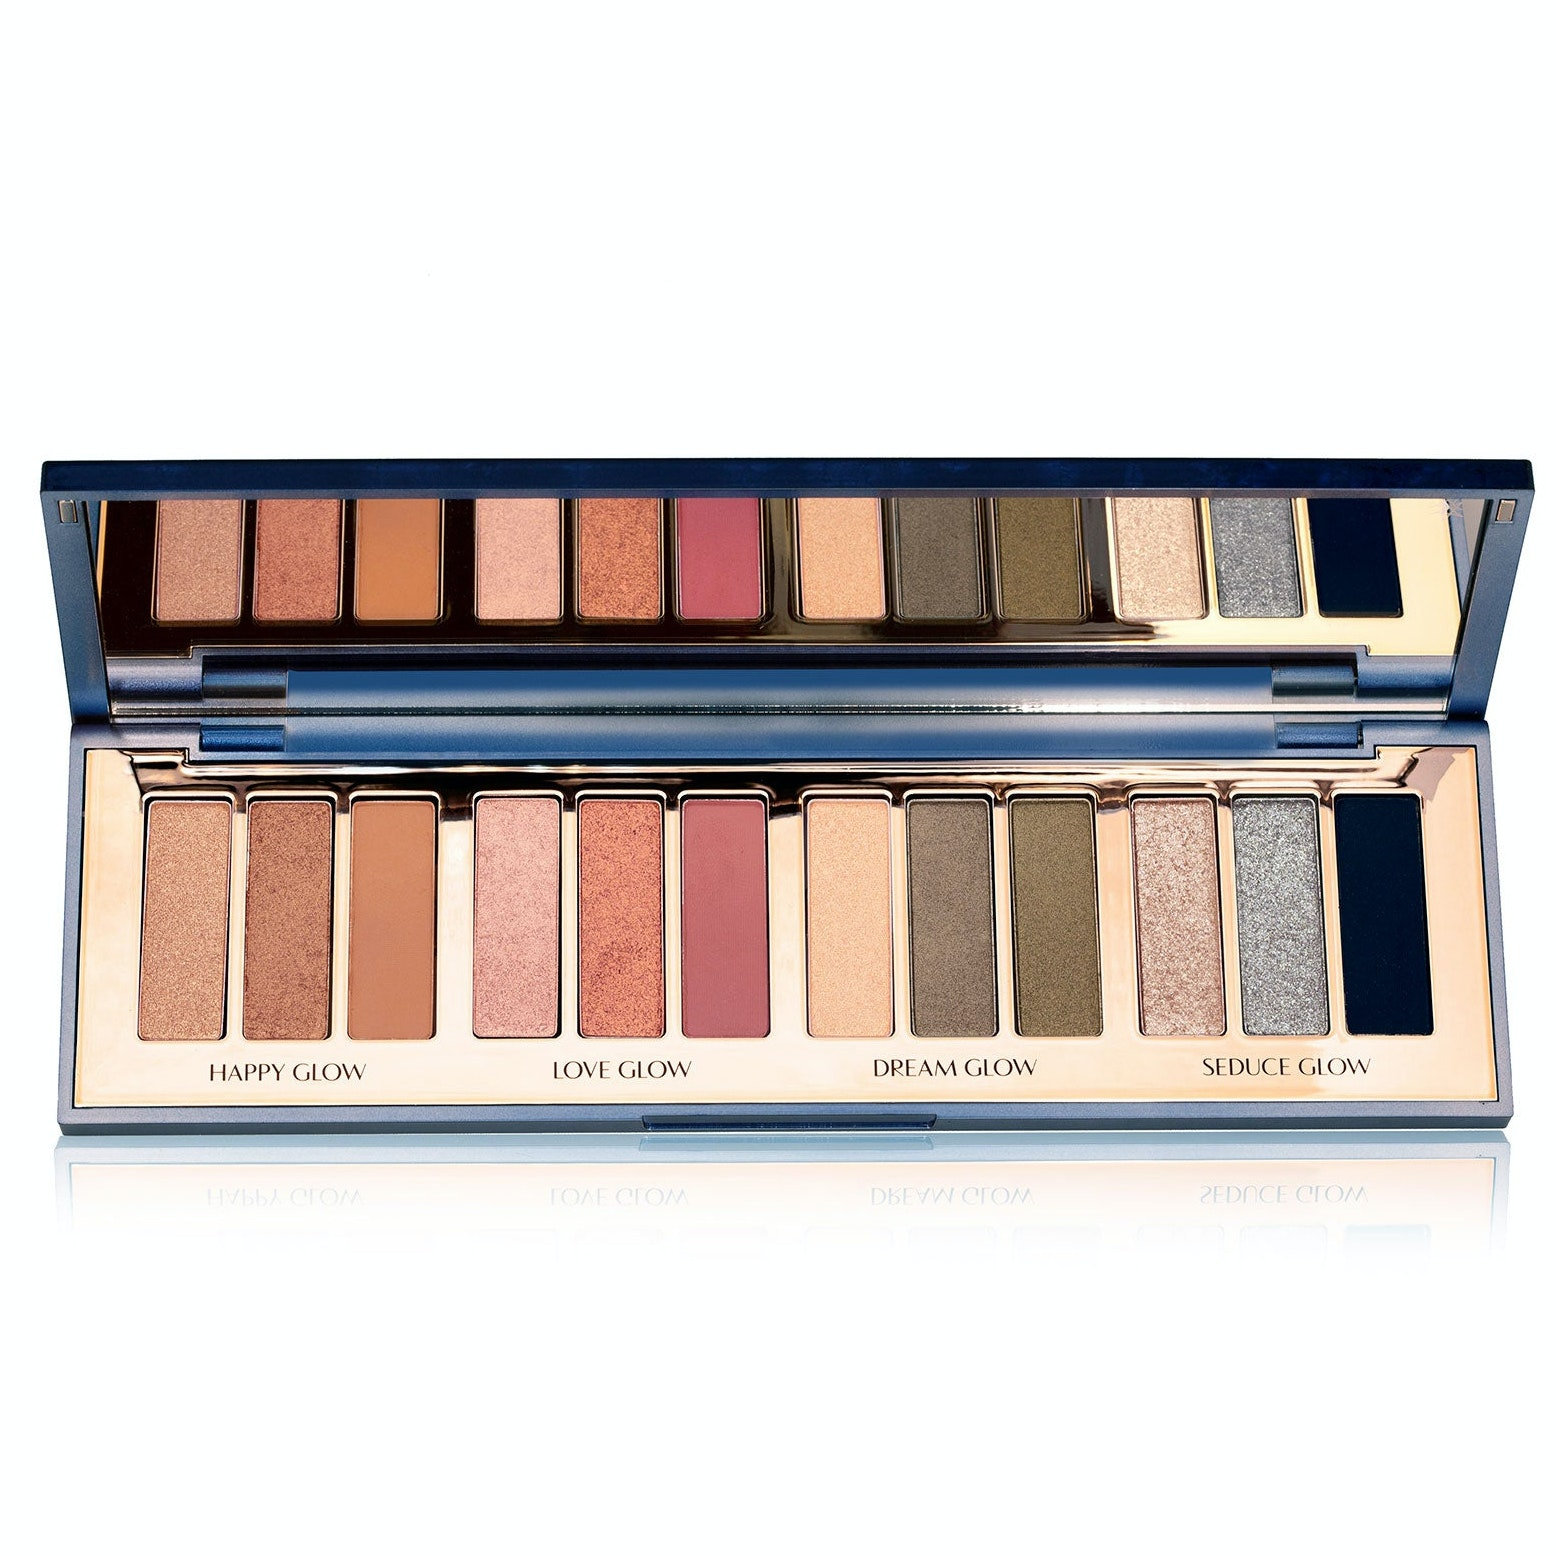 Charlotte Tilbury Starry Eyes to Hypnotize Eyeshadow Palette